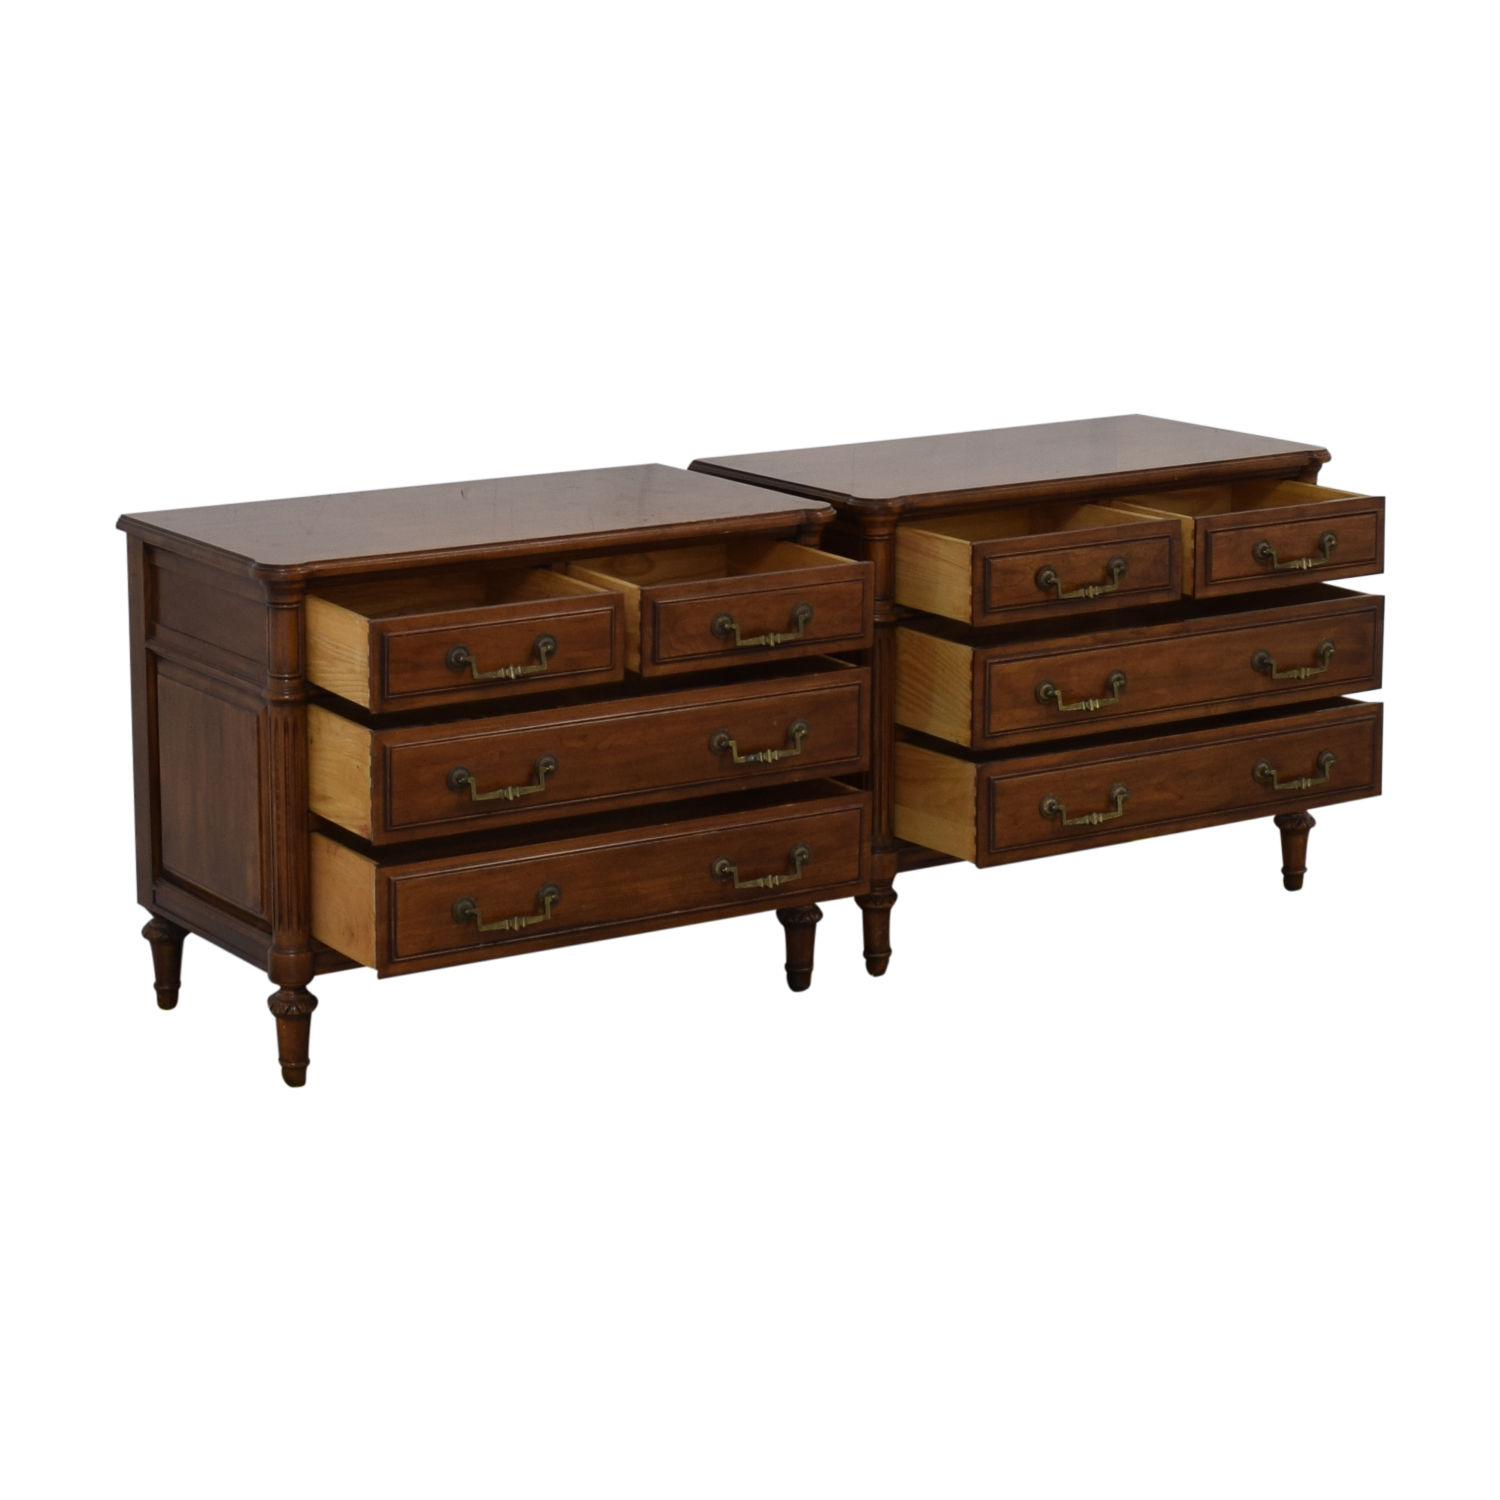 Baker Furniture Baker Furniture Davis Cabinet Four-Drawer End Tables nyc